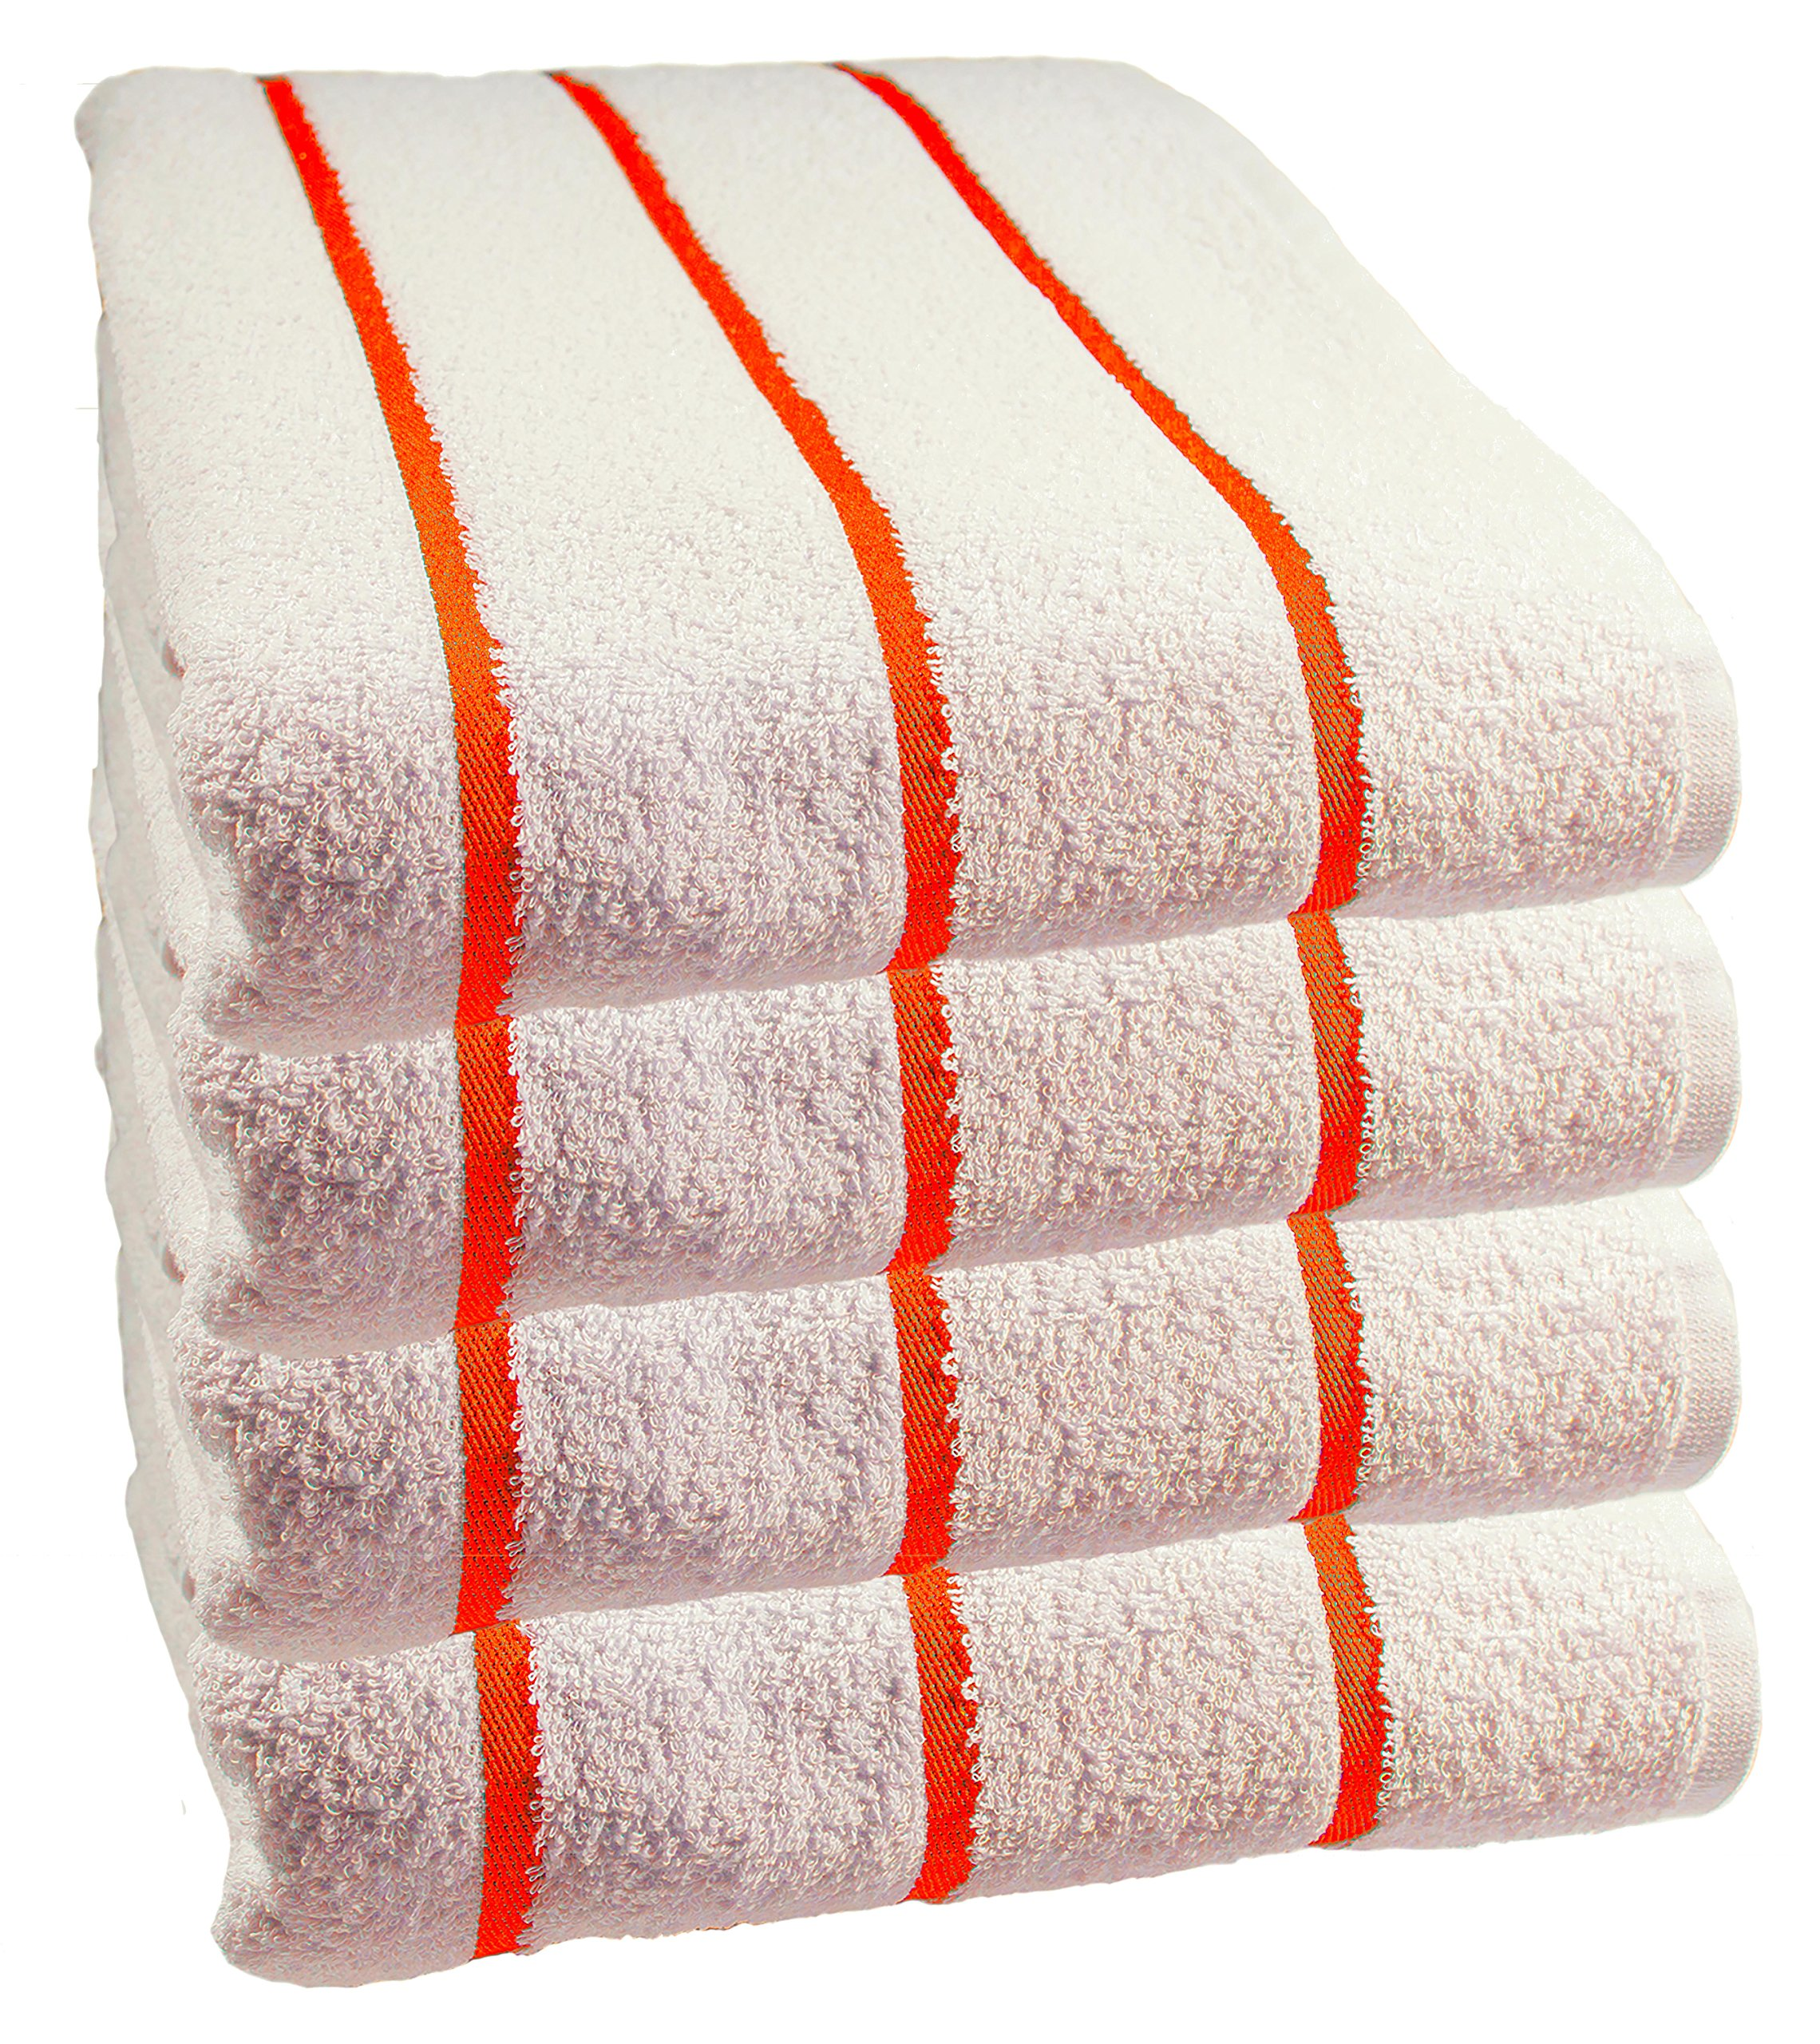 Hospitality Supply Inc 100% USA Cotton – Family variety pack of 4 Pool-Beach Striped Towels, 30x60. Sold to major hotels in the USA, Caribbean. (Orange)